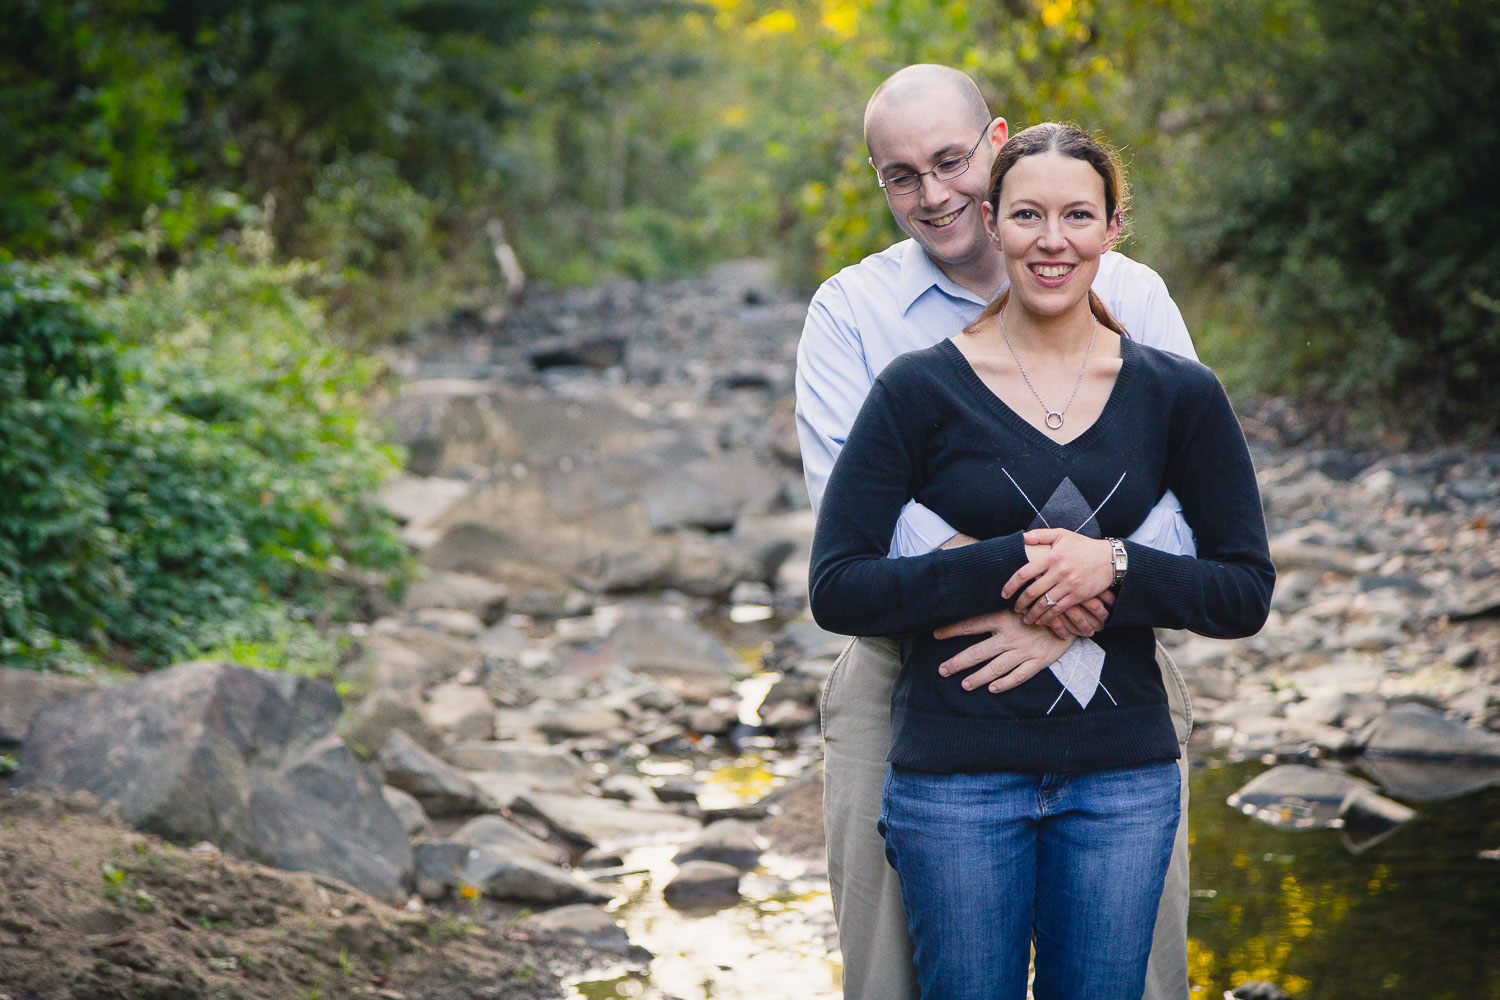 a-beautiful-engagement-session-at-savage-mill-greg-ferko-petruzzo-photography-07